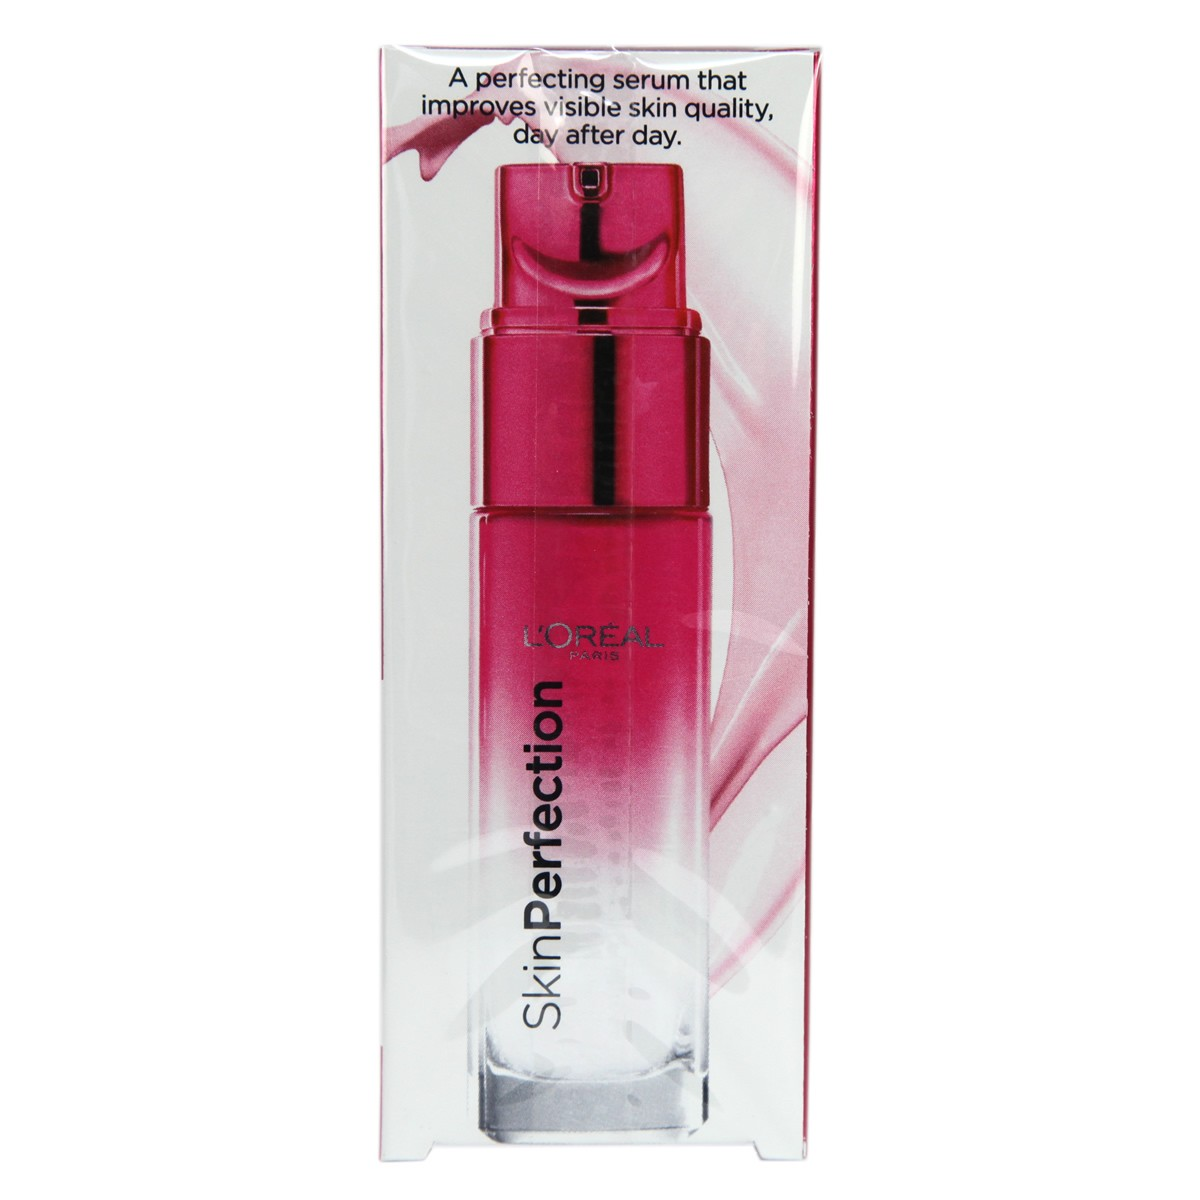 L'Oreal Paris Skin Perfection Advanced Correcting Serum